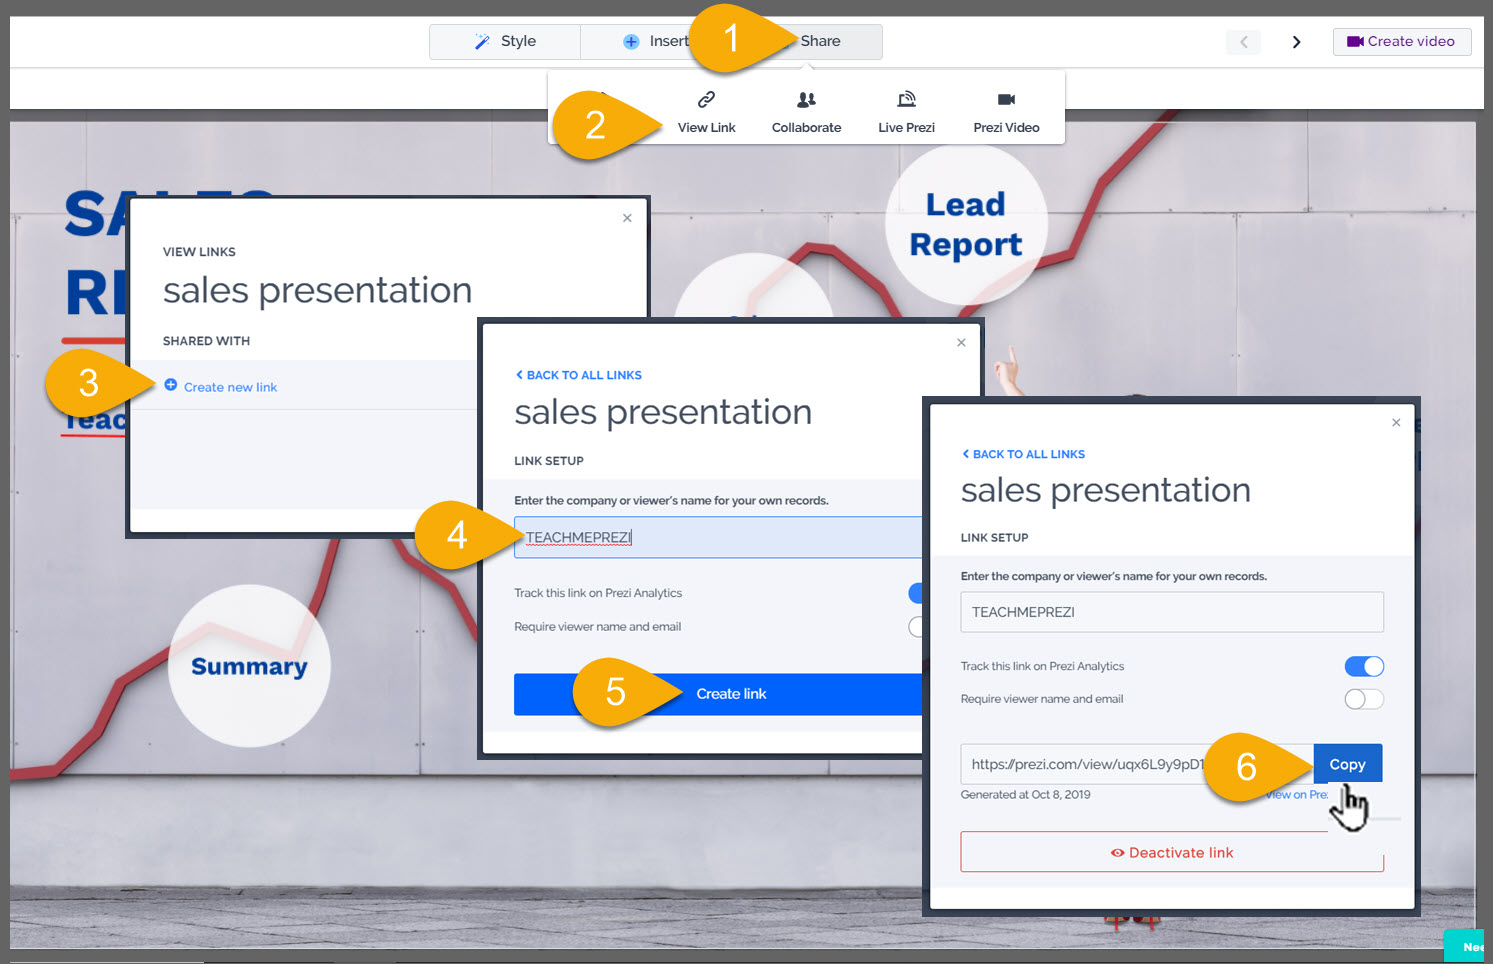 share link to convert prezi to video